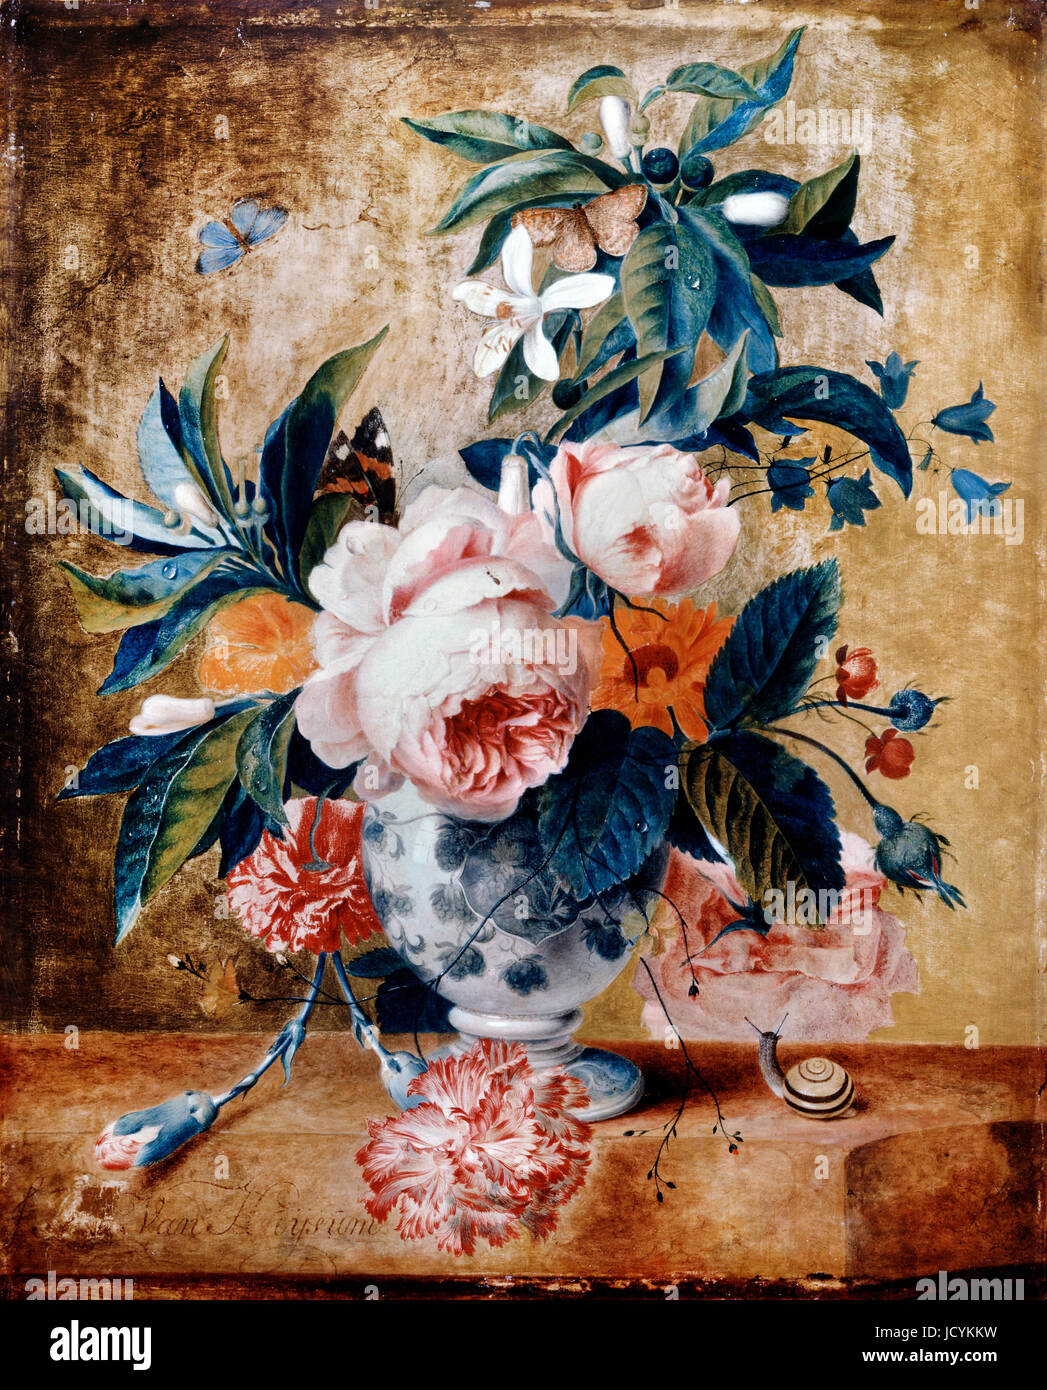 Jan van Huysum, A Delft Vase with Flowers. Circa 1730. Oil on panel. Dulwich Picture Gallery, London, England. - Stock Image